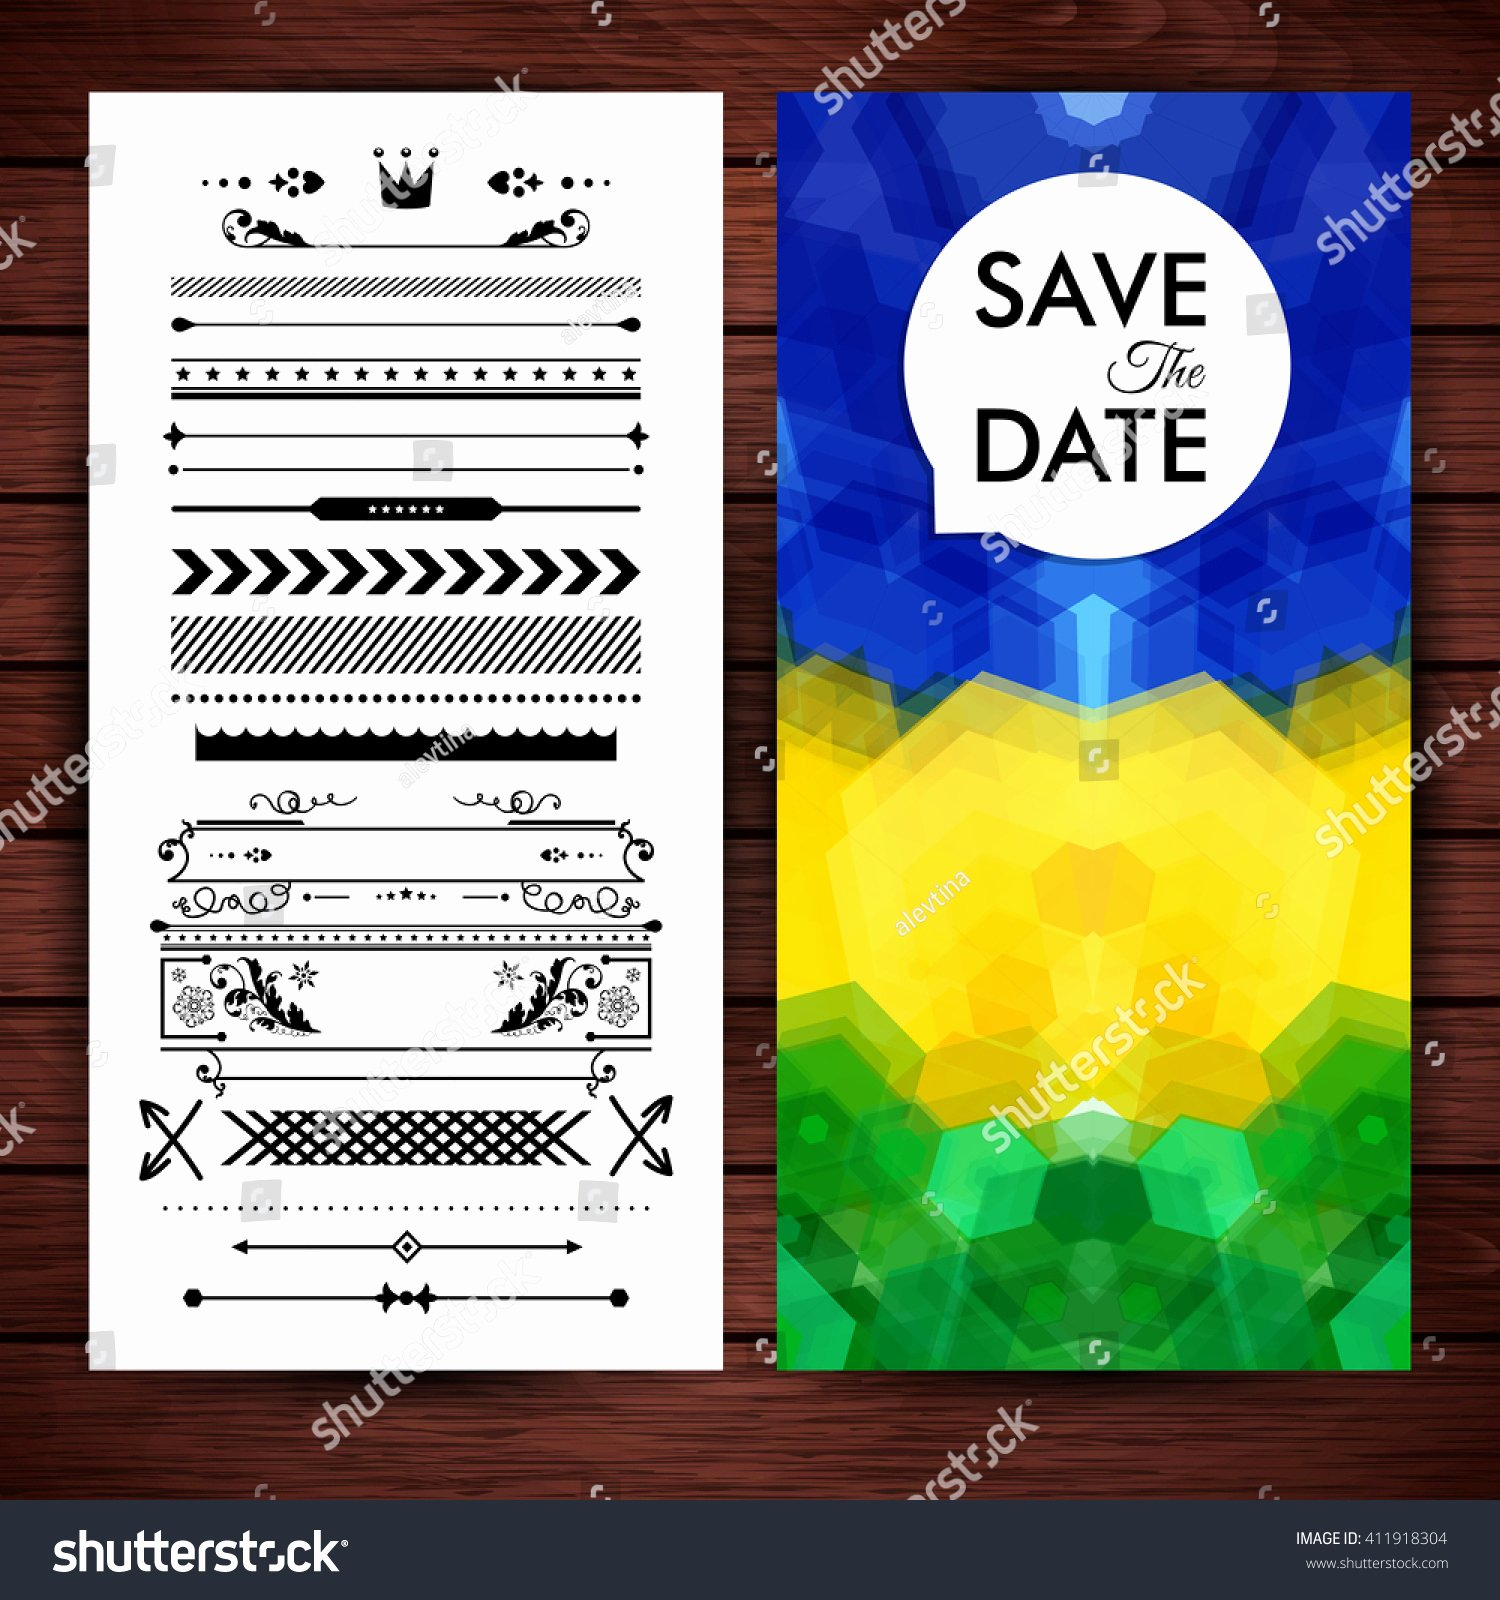 Save the Date Text Template Awesome Rectangular Blue Yellow Green Save Date Stock Vector